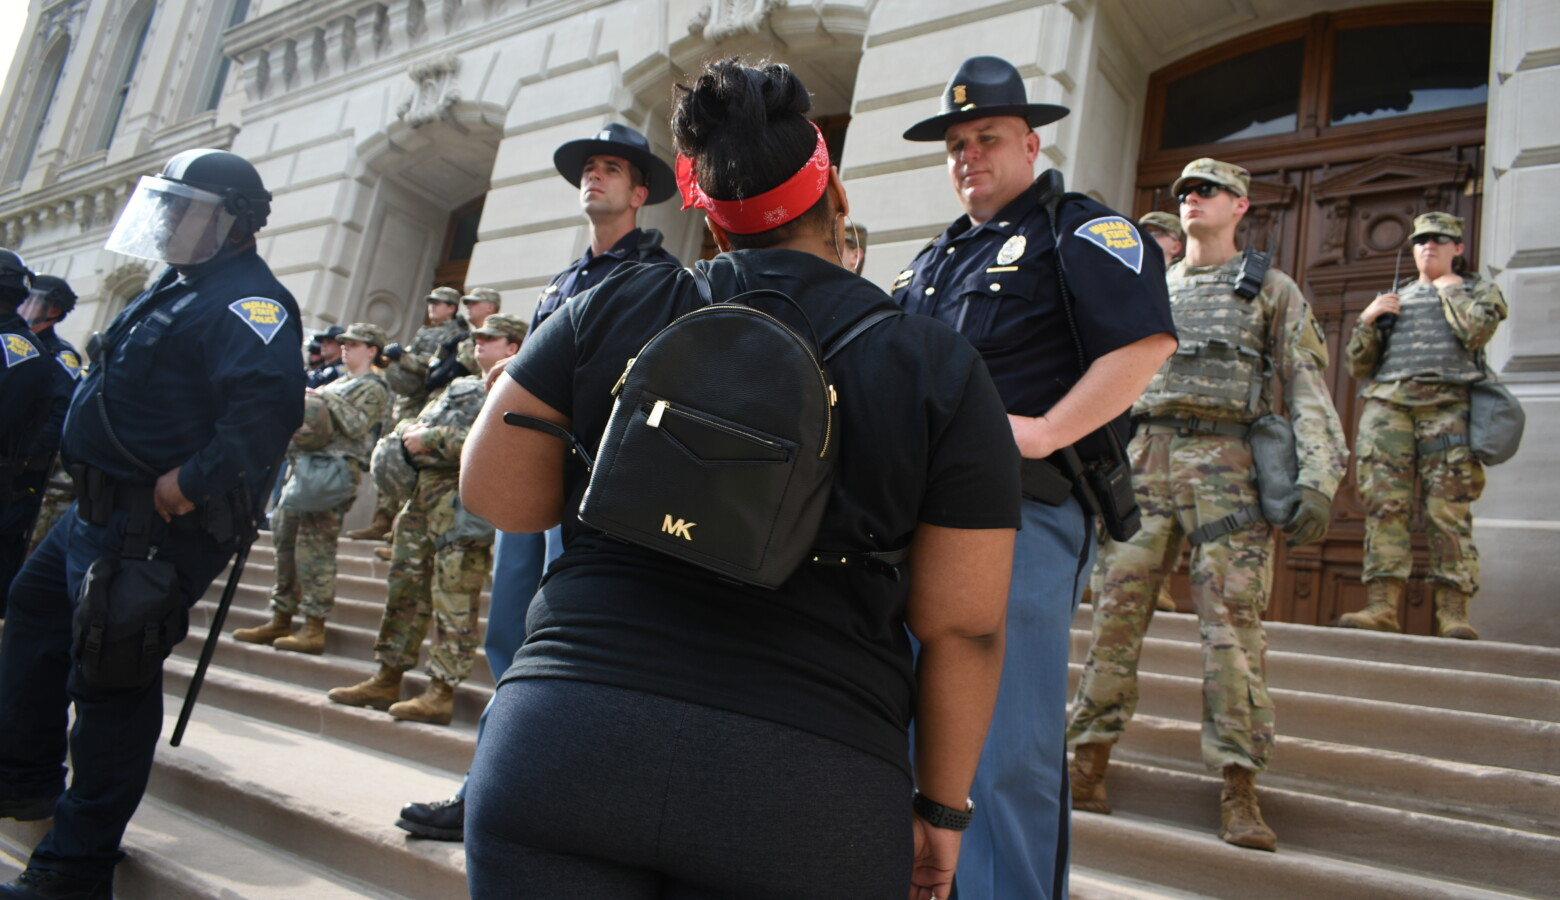 State Police troopers and Indiana National Guardsmen were stationed around the Indiana Statehouse during 2020 Black Lives Matter protests. (Justin Hicks/IPB News)